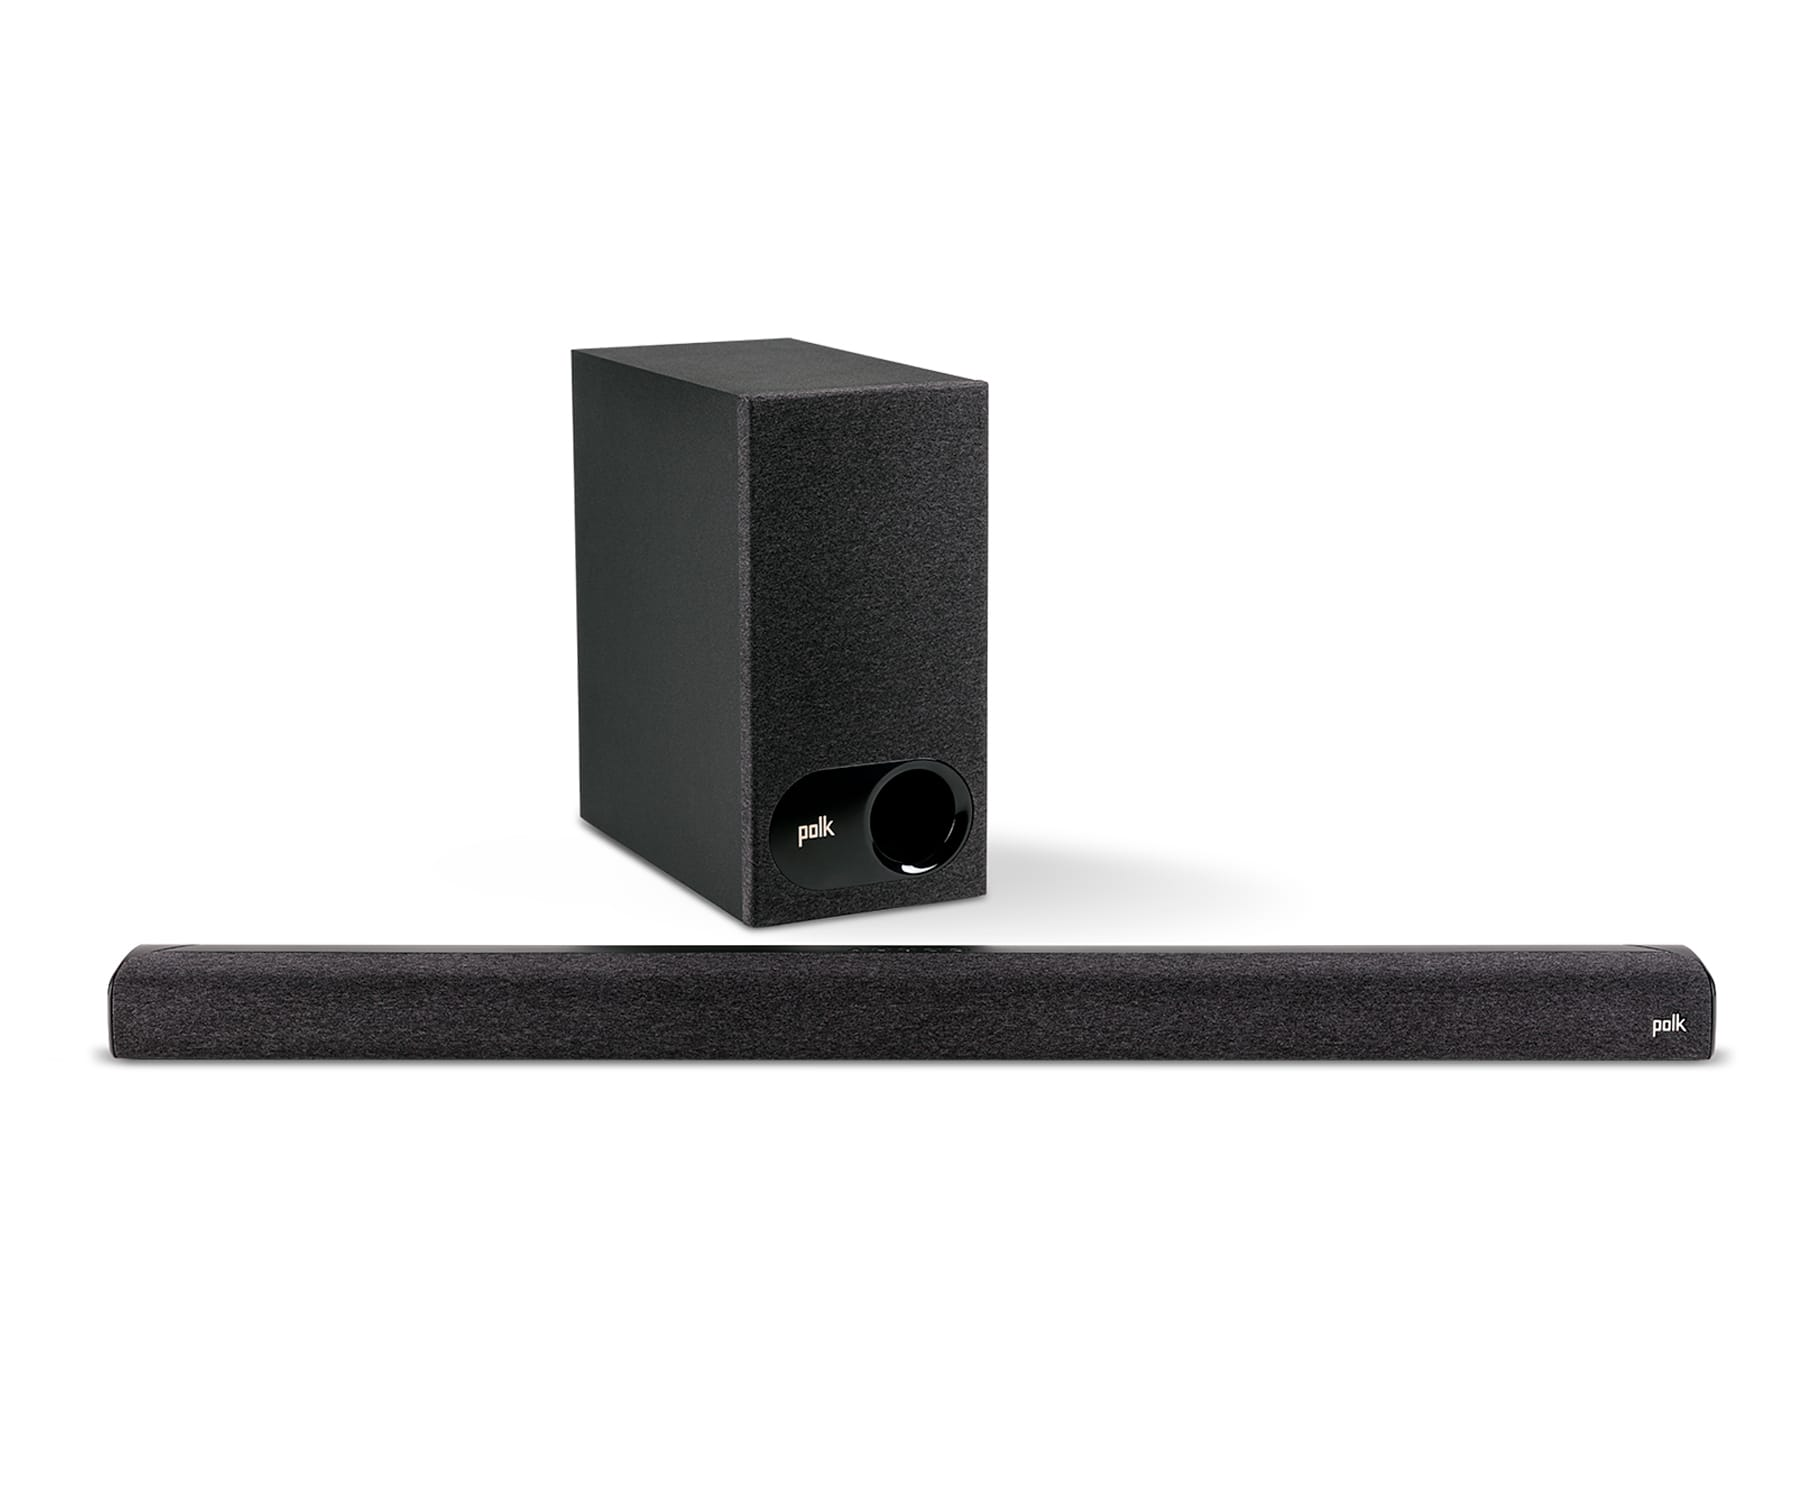 POLK SIGNA S3 SOUND BAR BARRA DE SONIDO Y SUBWOOFER INALÁMBRICO 160W PARA TV CON CHROMECAST INTEGRADO, BLUETOOTH WIFI